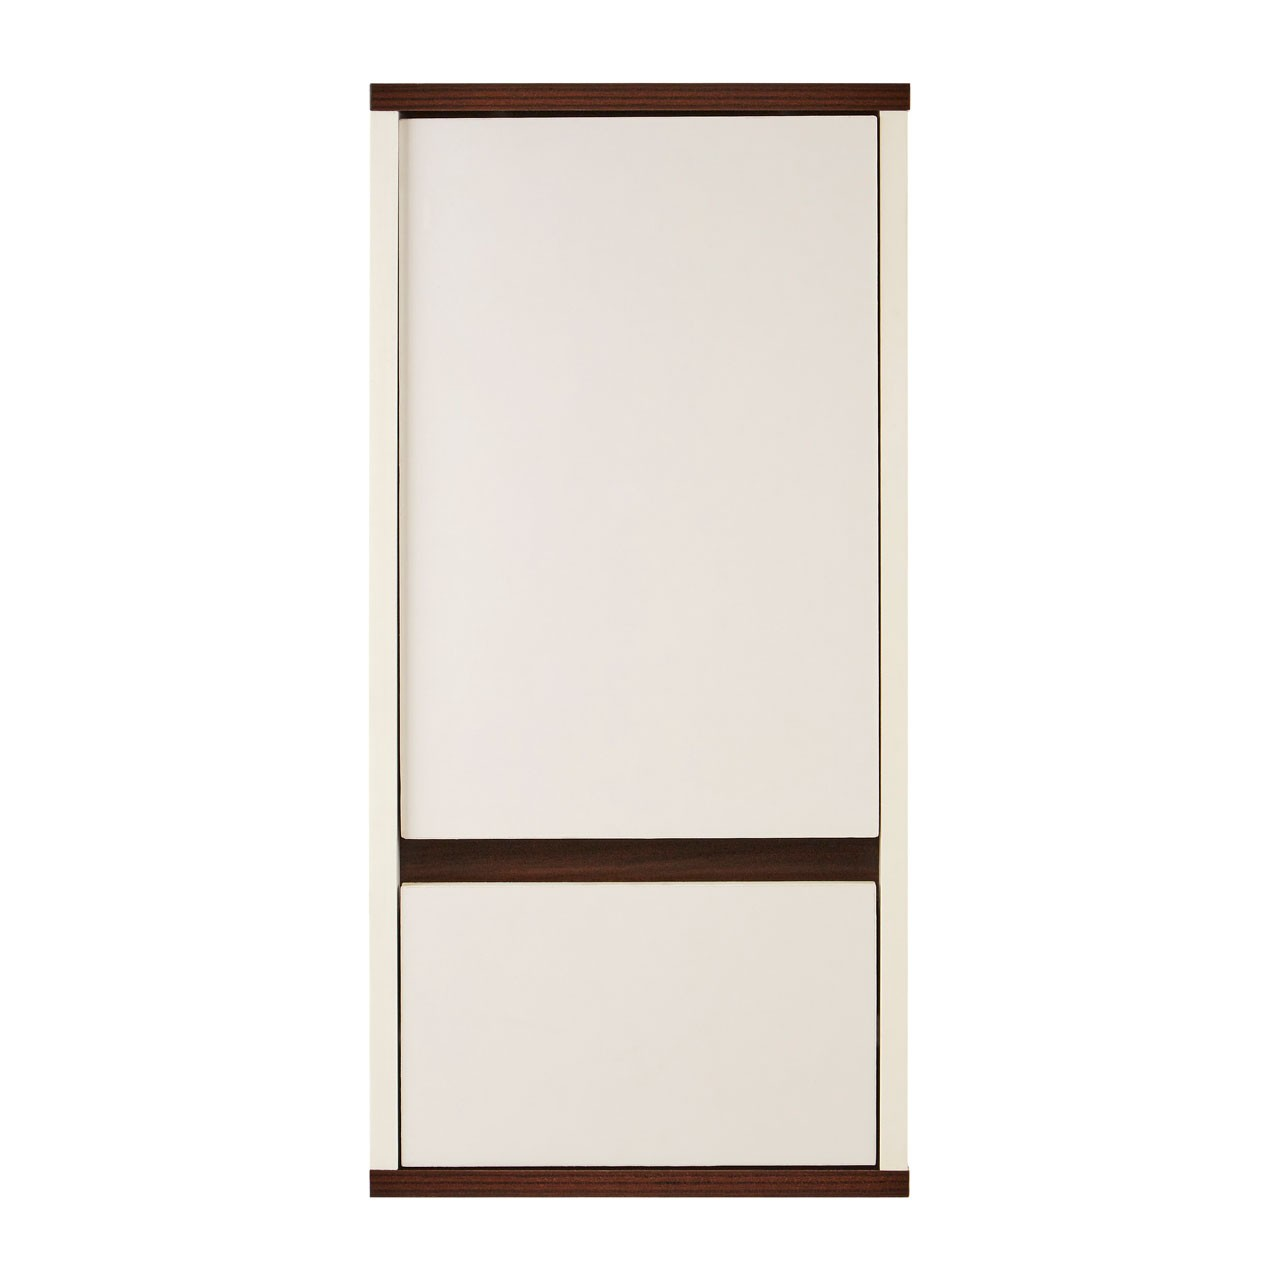 Prime Furnishing Chelsea 1 Door Wall Cabinet - White